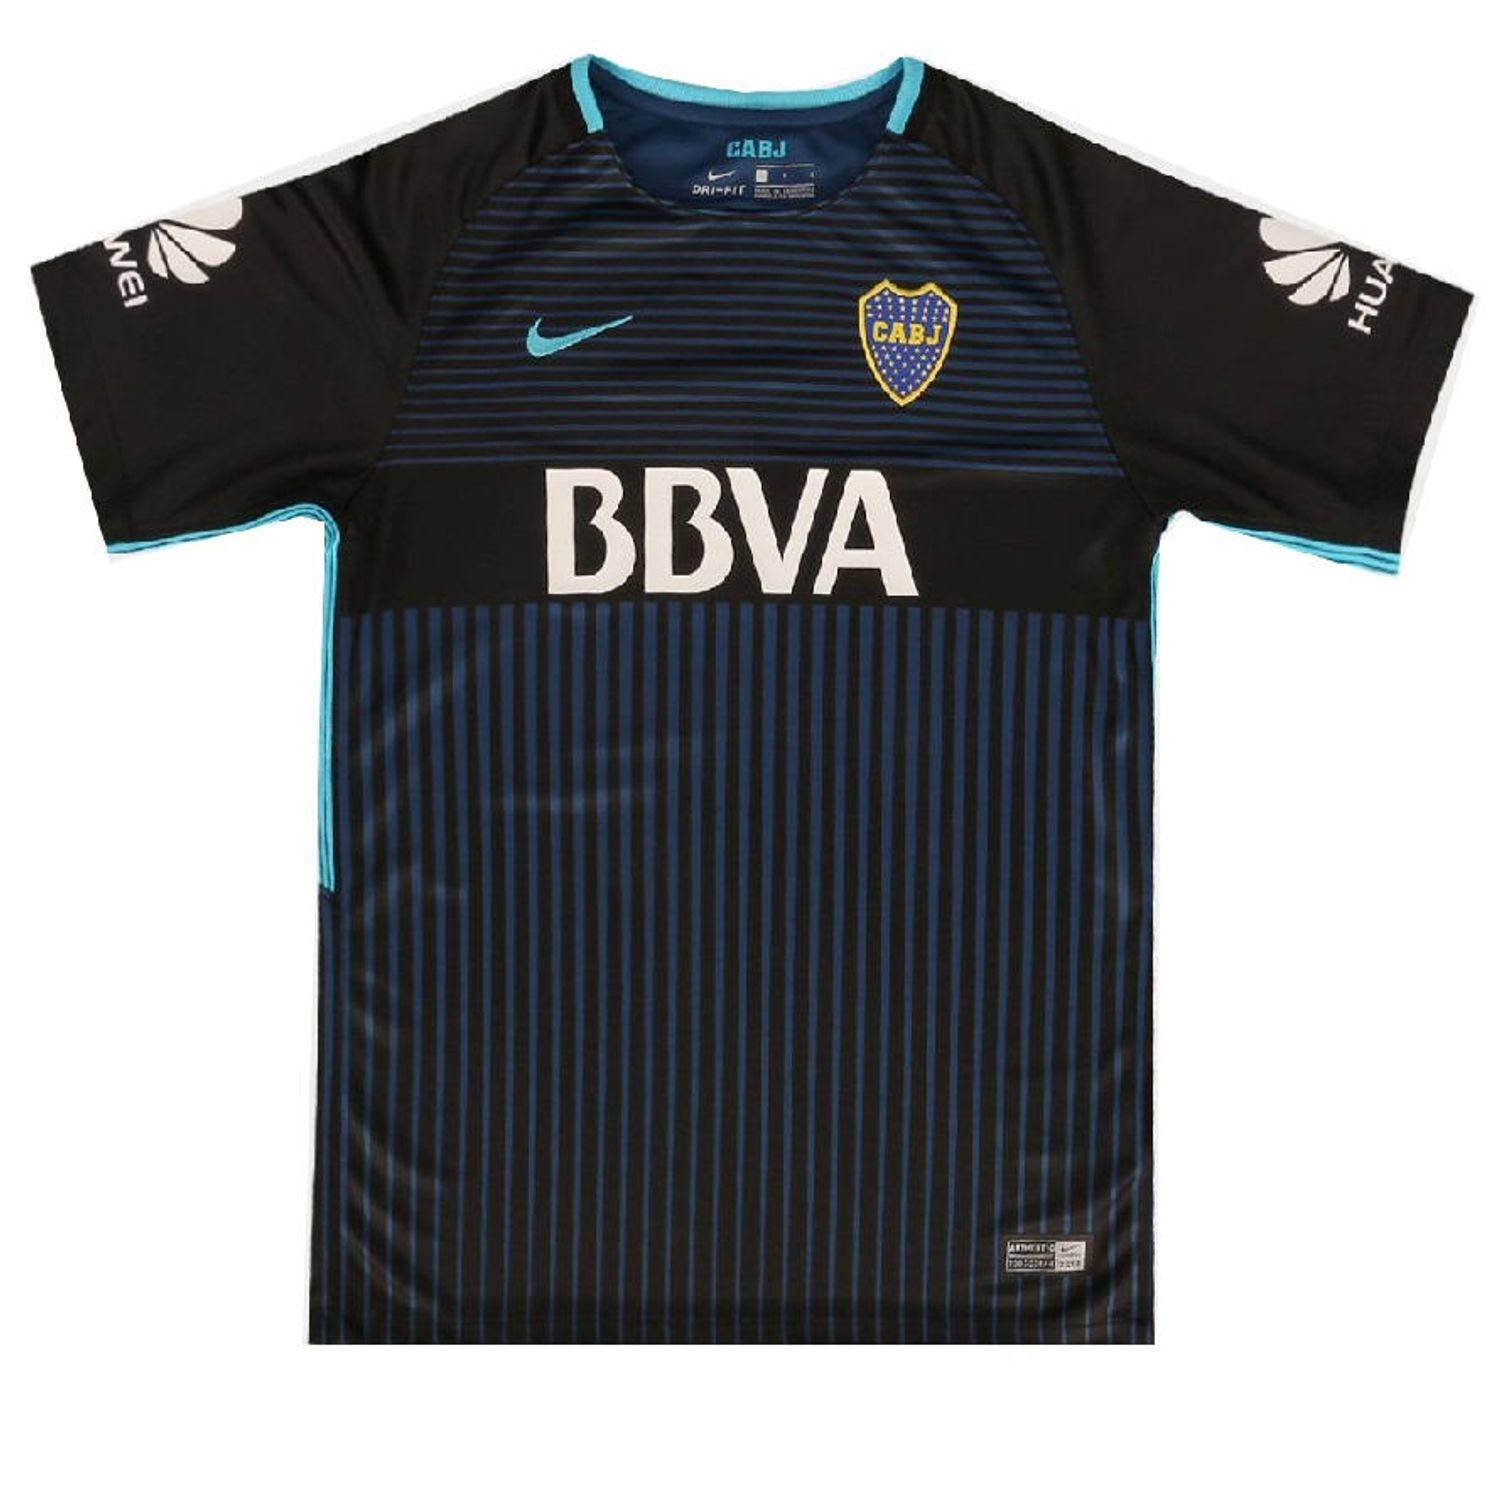 16c19cd80 CAMISETA NIKE 3° BOCA JR STADIUM 17 18 NIÑOS - sporting